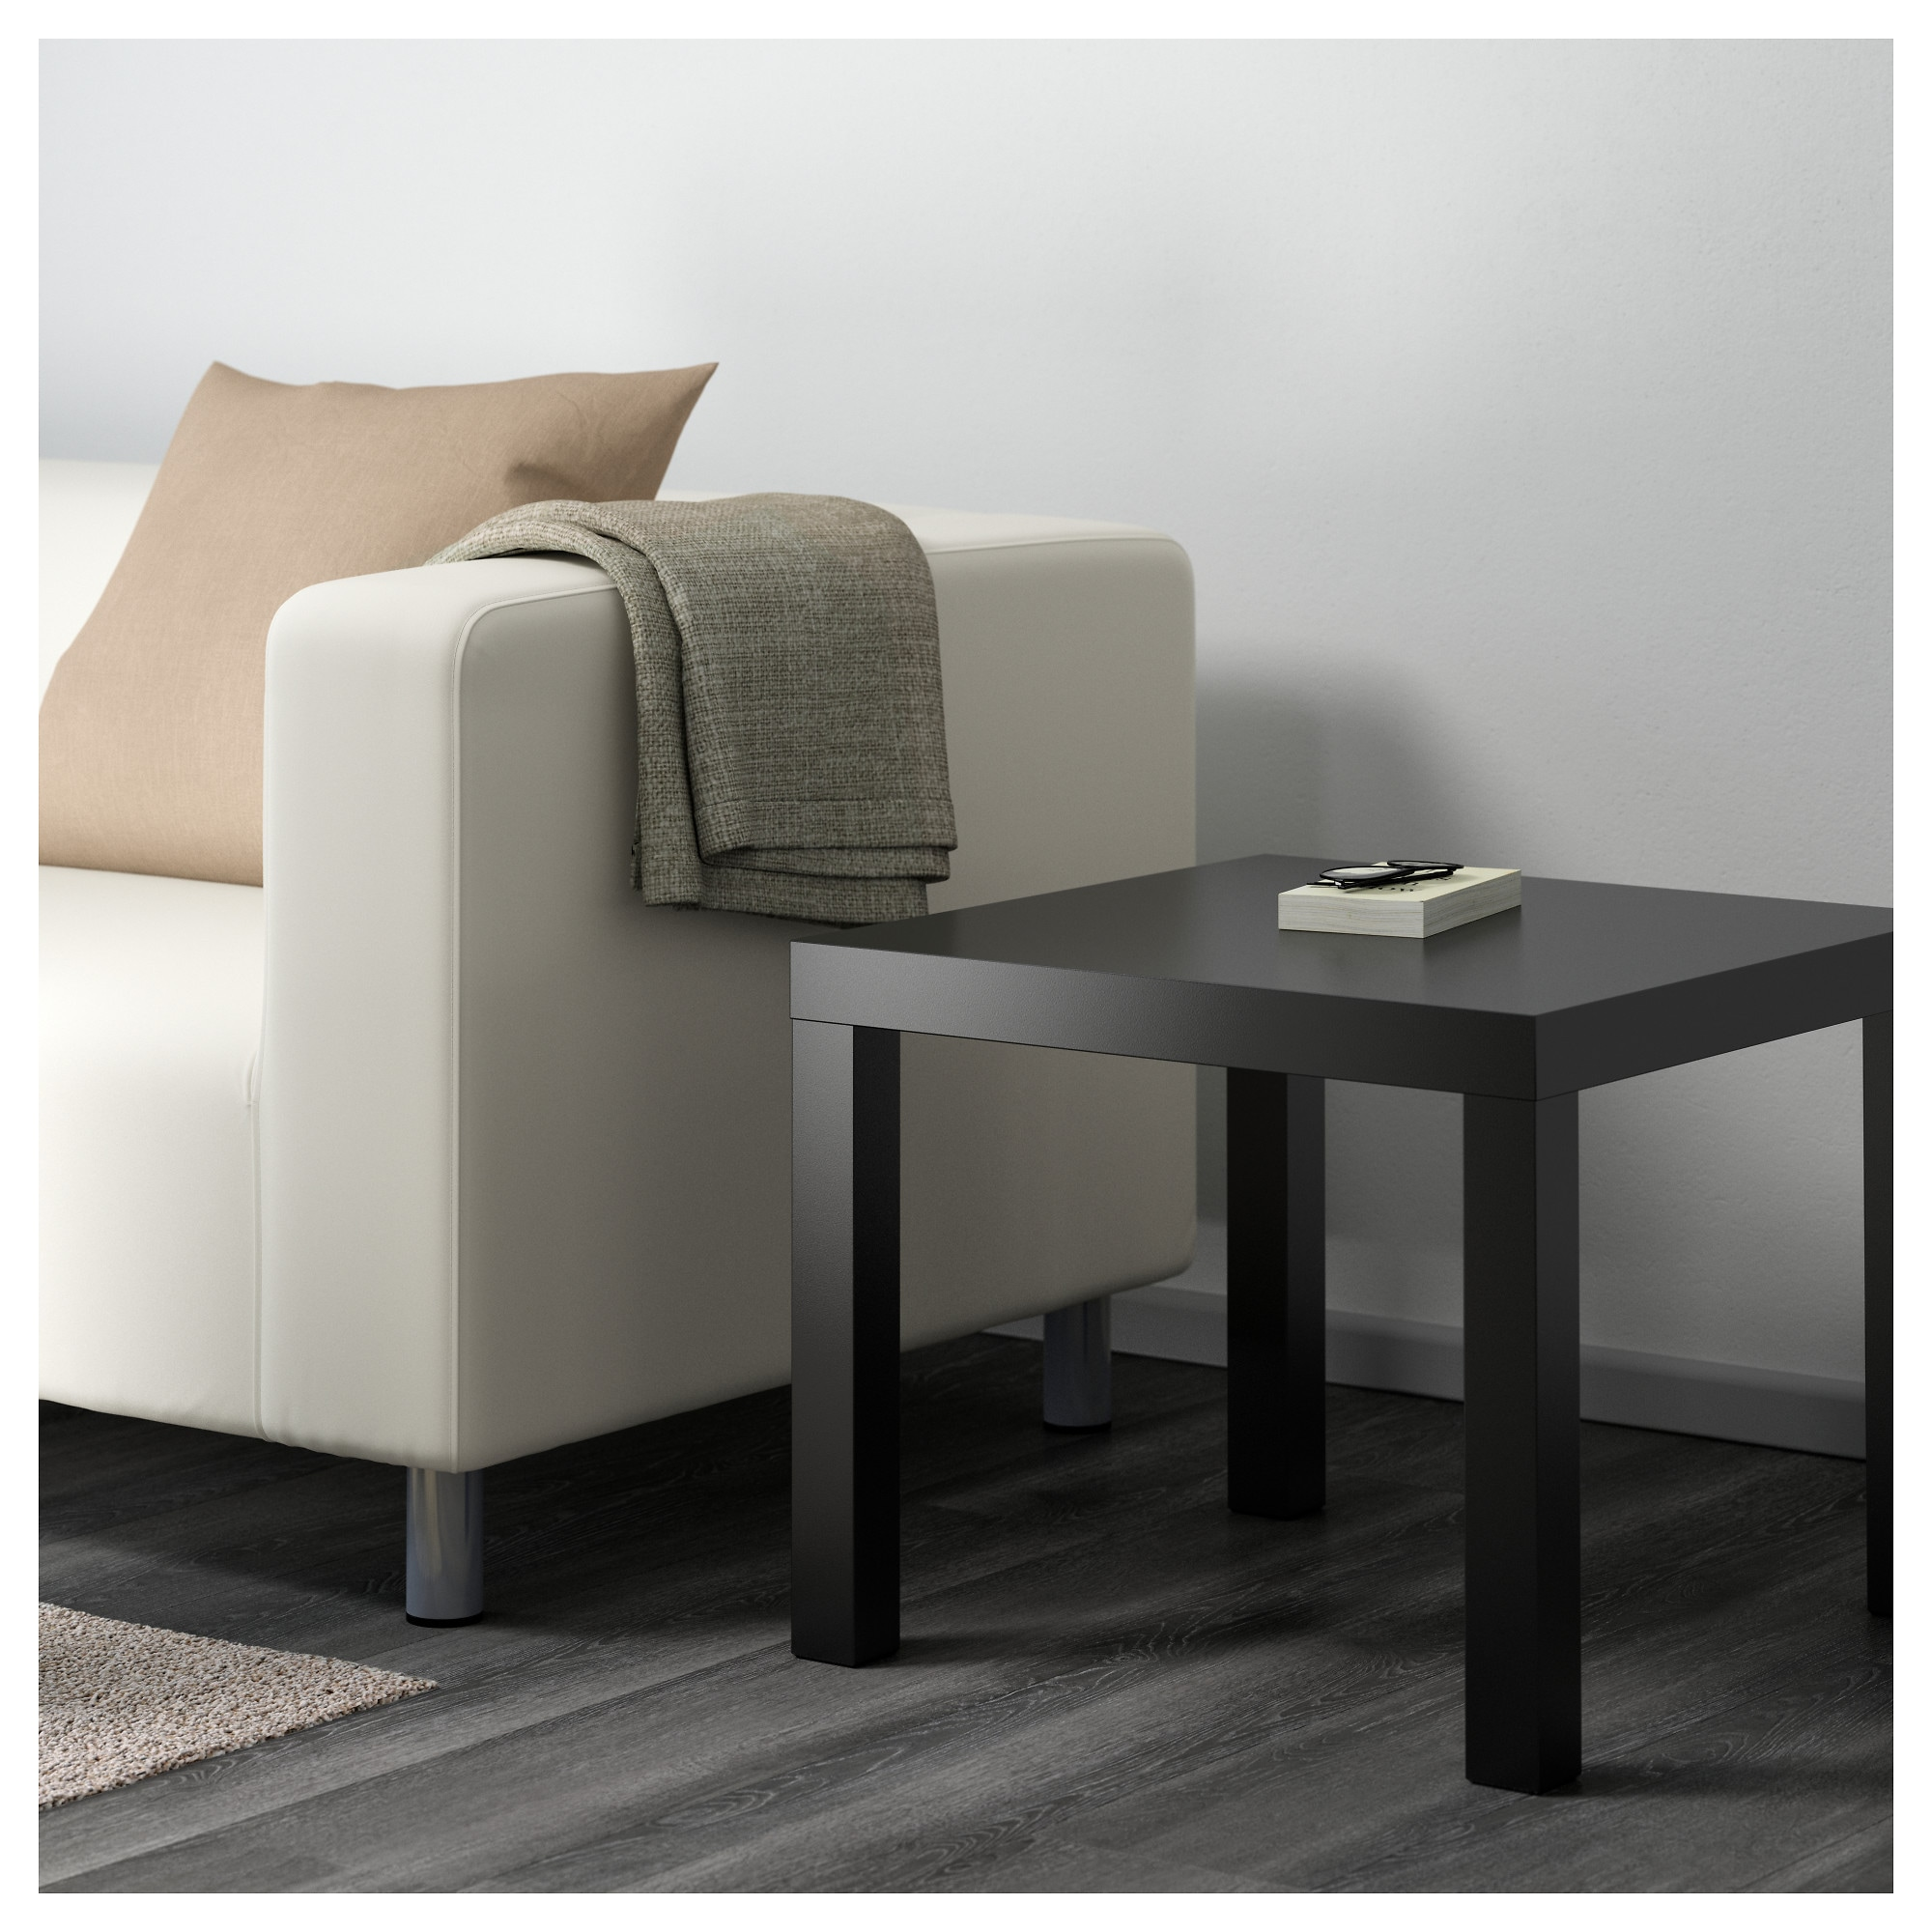 LACK Side table birch effect 21 58x21 58 IKEA